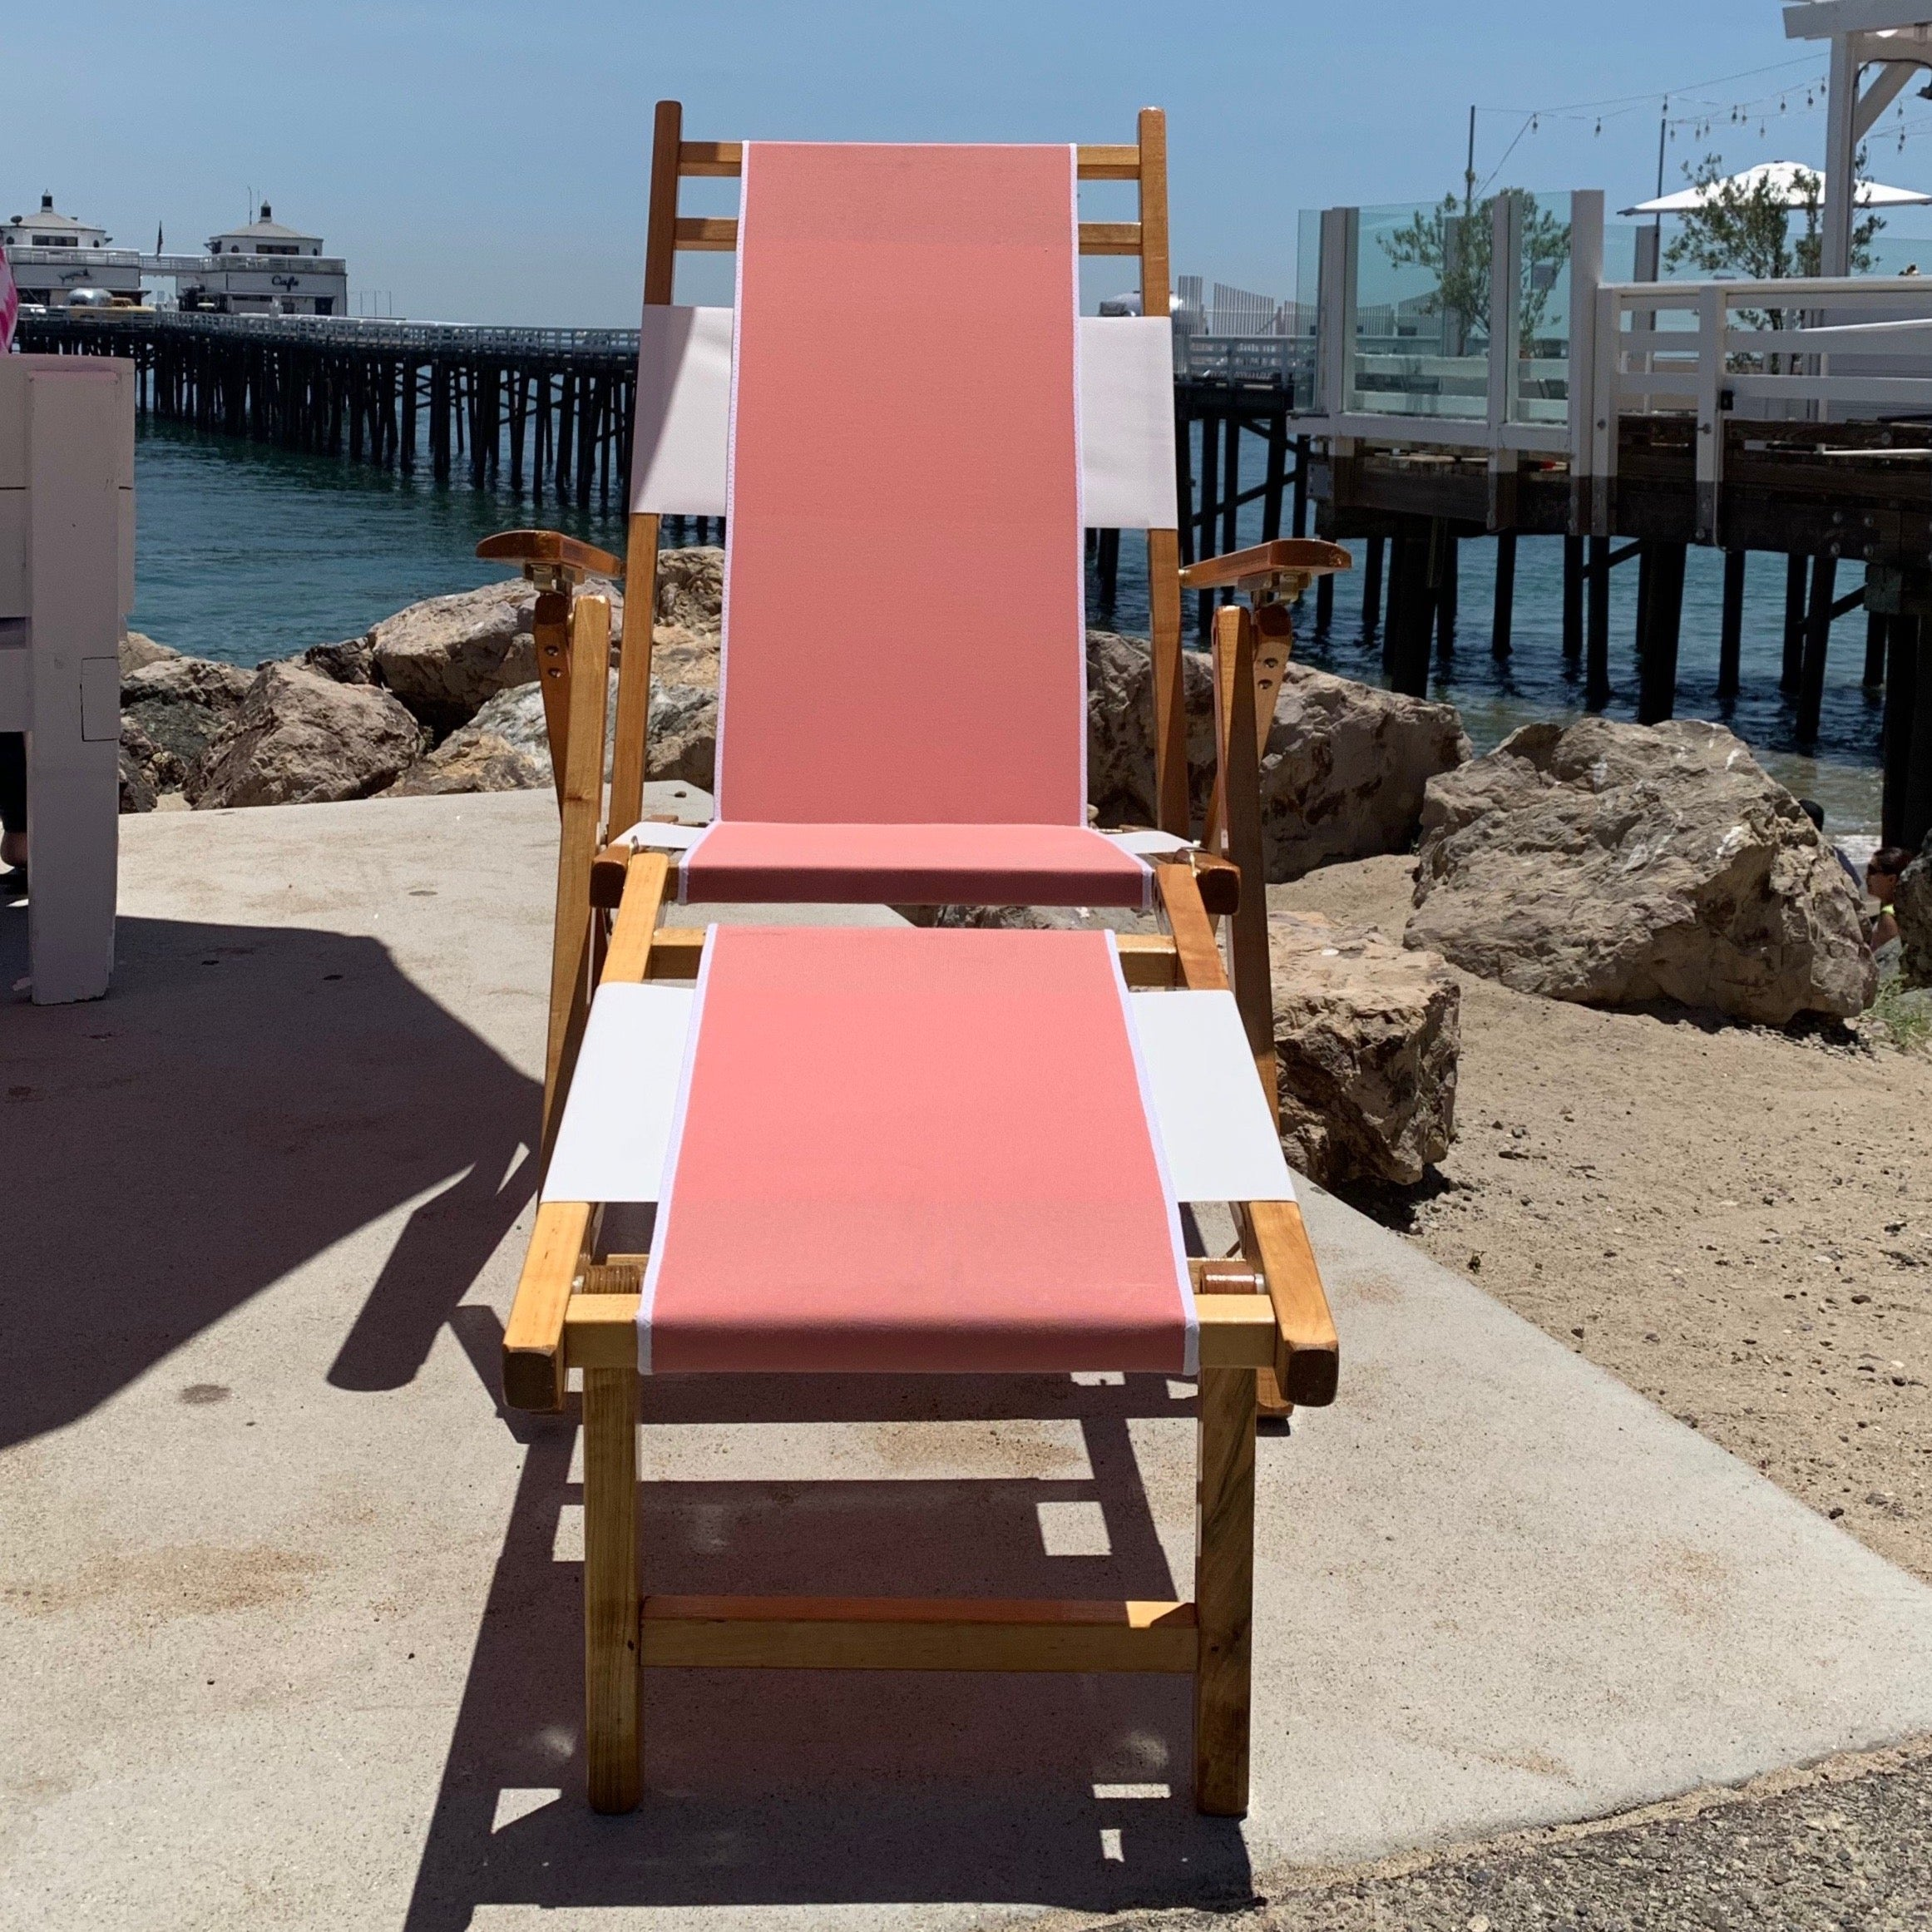 A folding beach chair made of wood. There's a pink strip of fabric running from the head rest to the end of the seat.